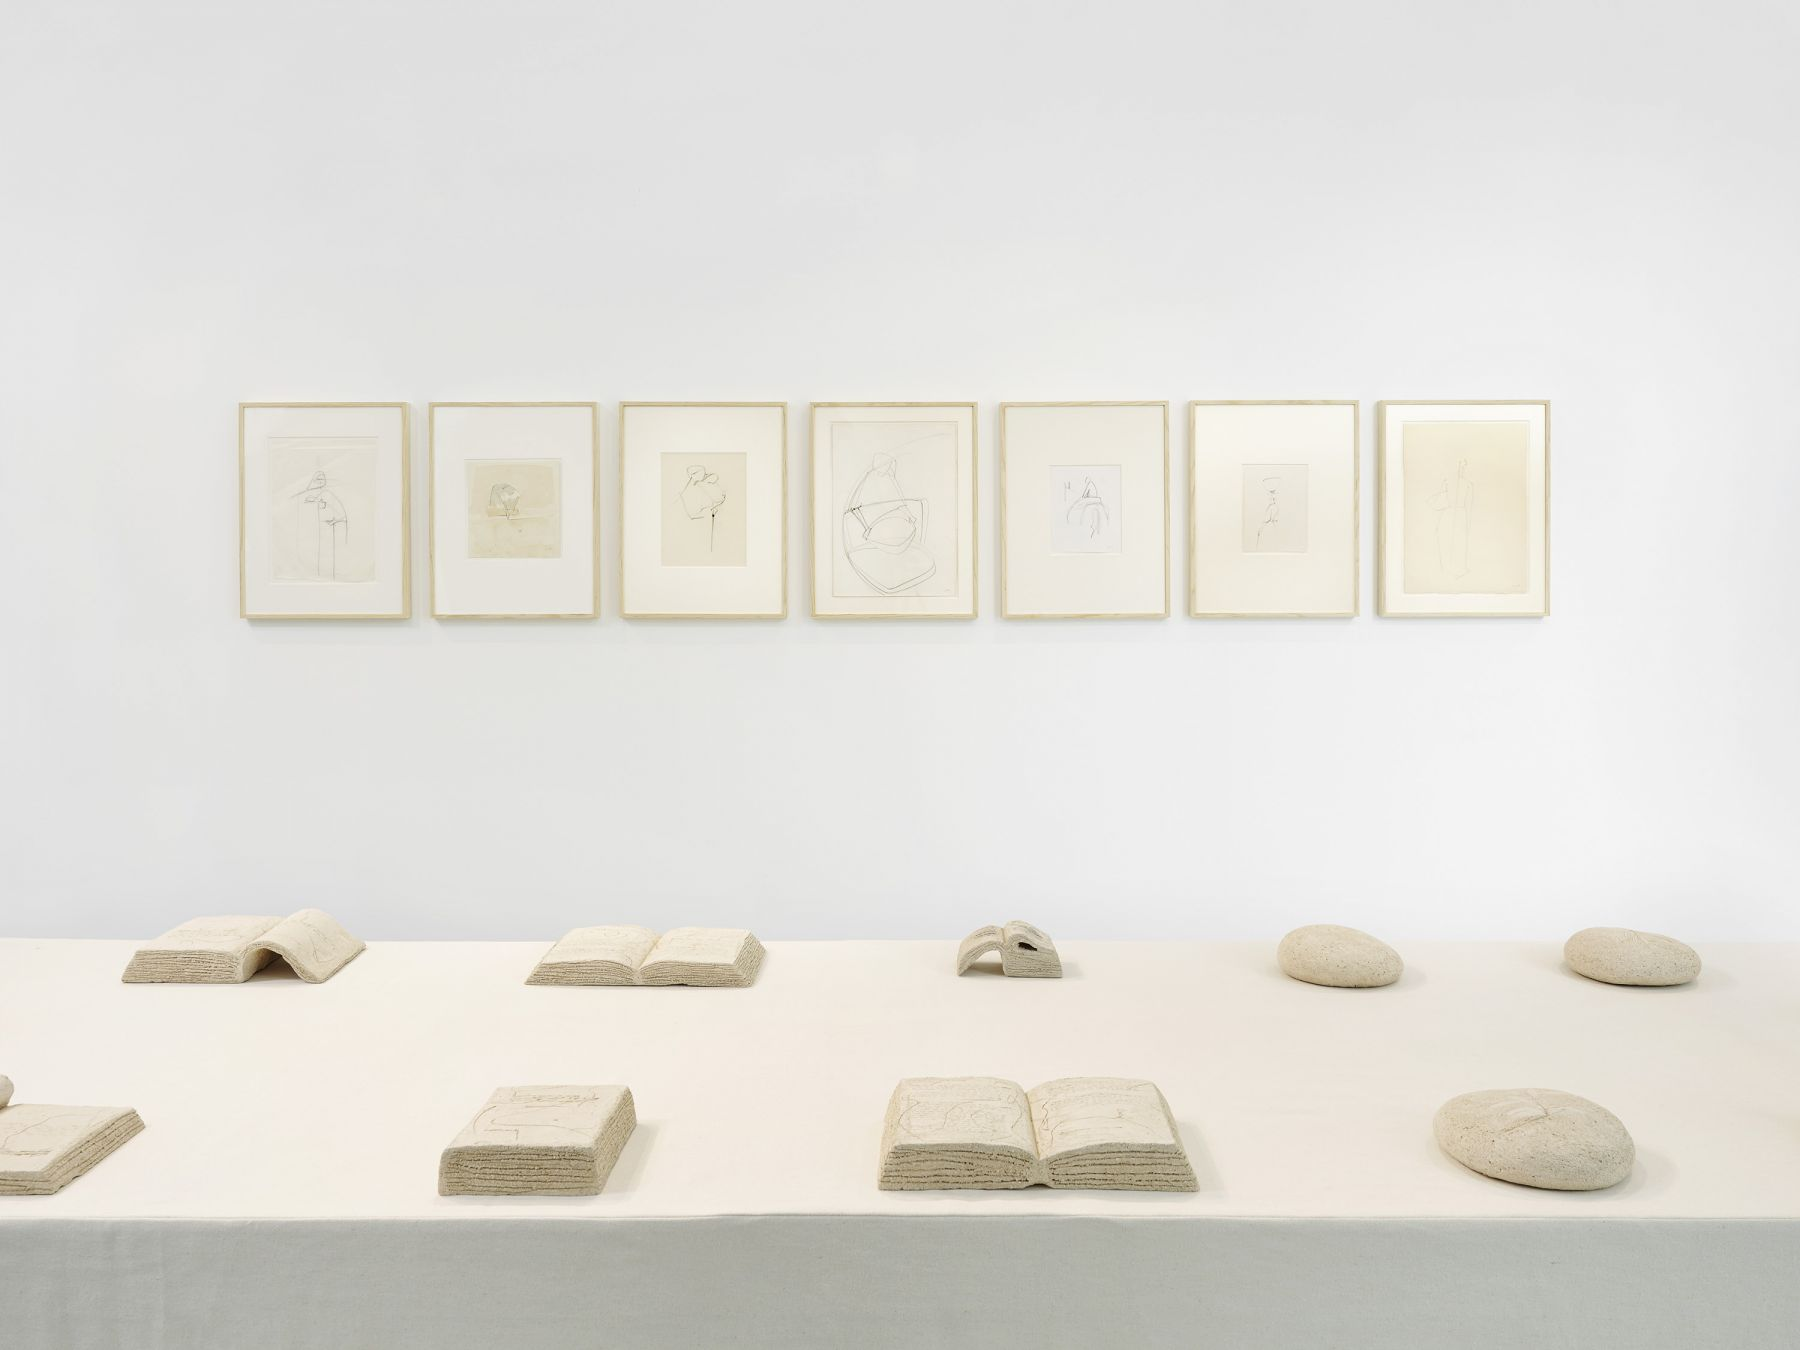 exhibition of textile and paper works by maria lai in a chelsea art gallery